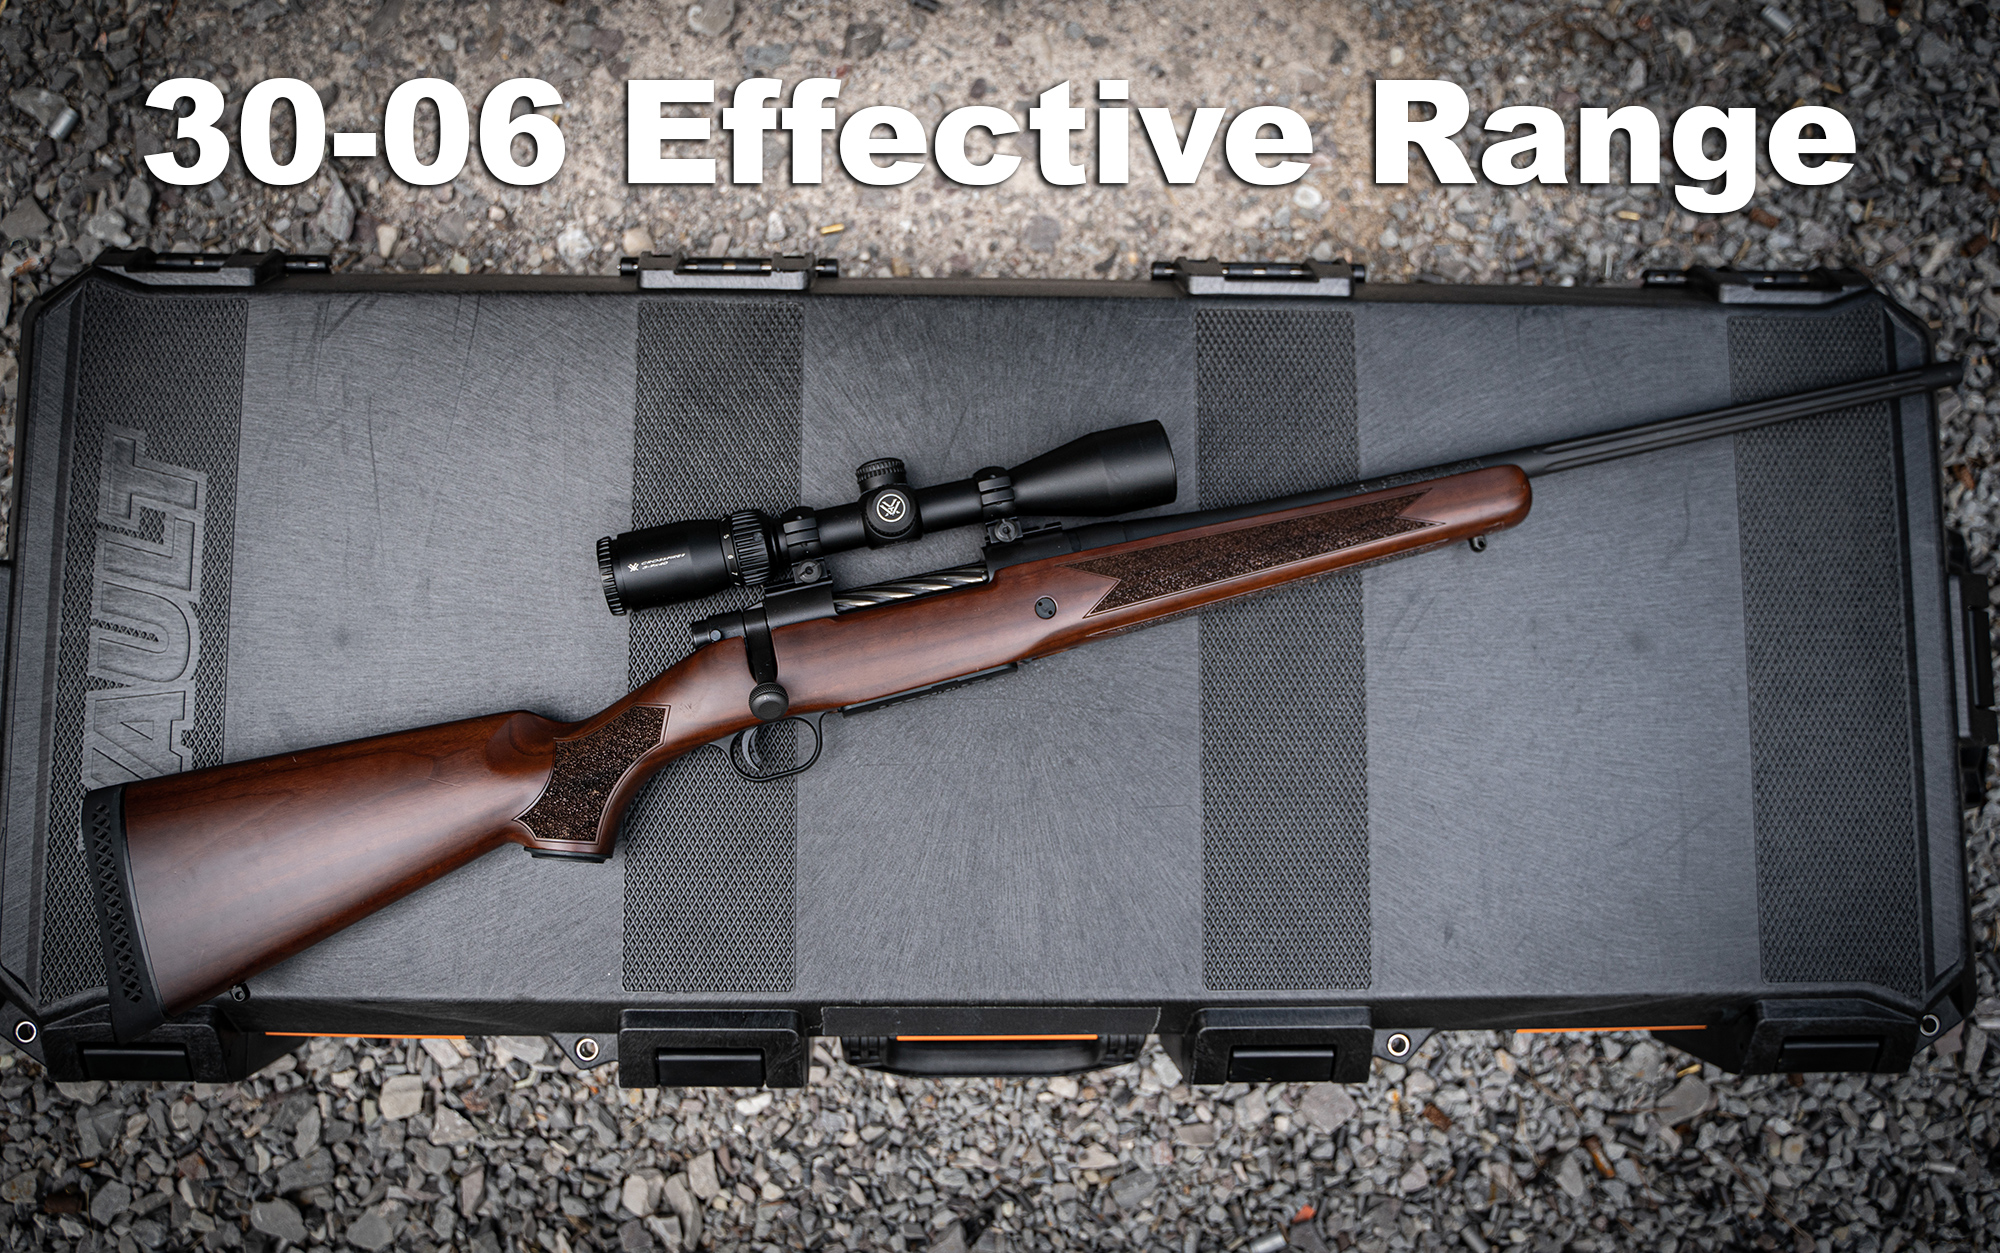 30-06 effective range with a rifle on a case